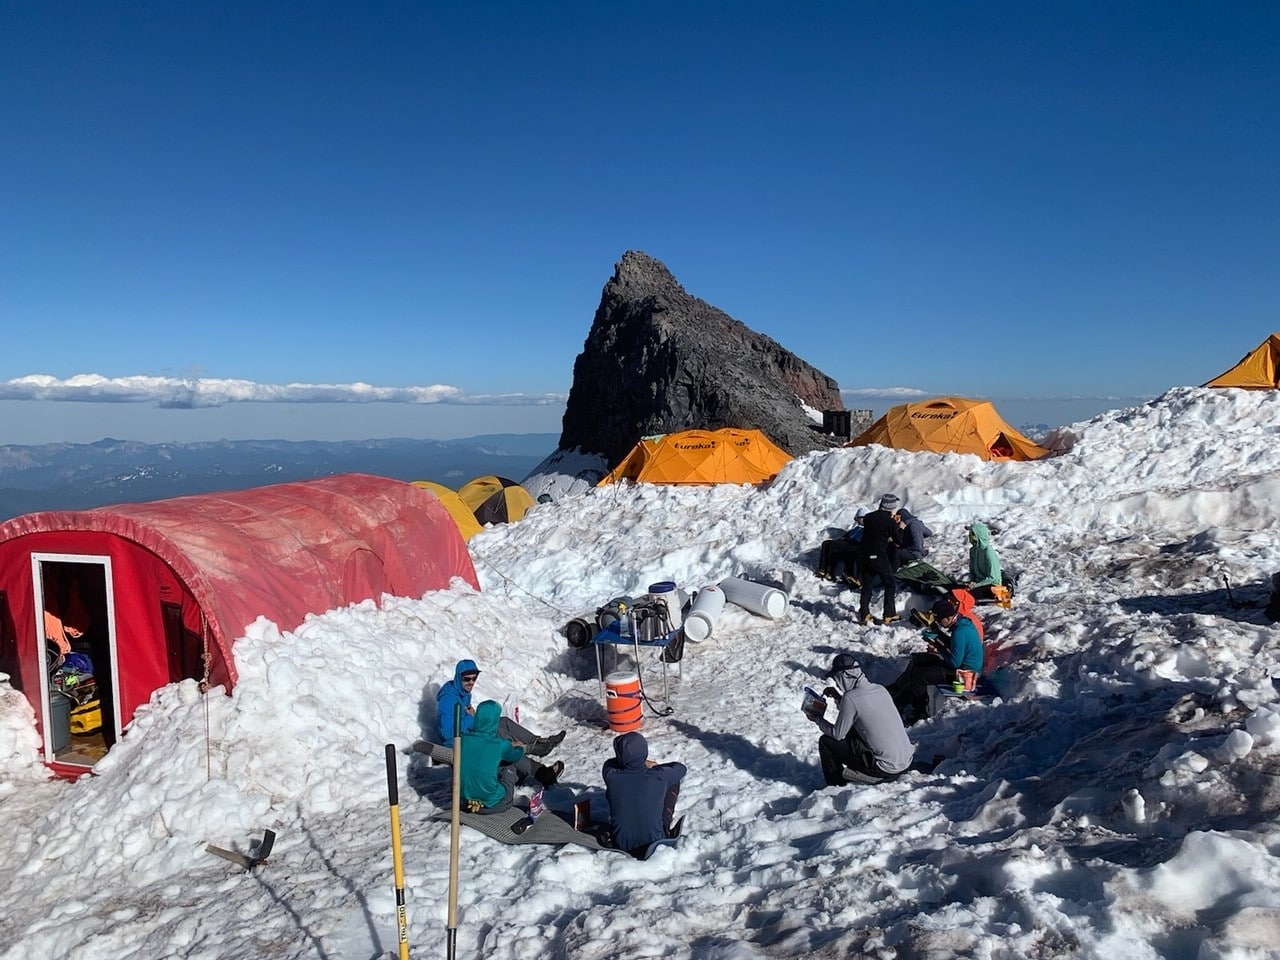 7/20 3-day muir climb: socially distant dinner with a view